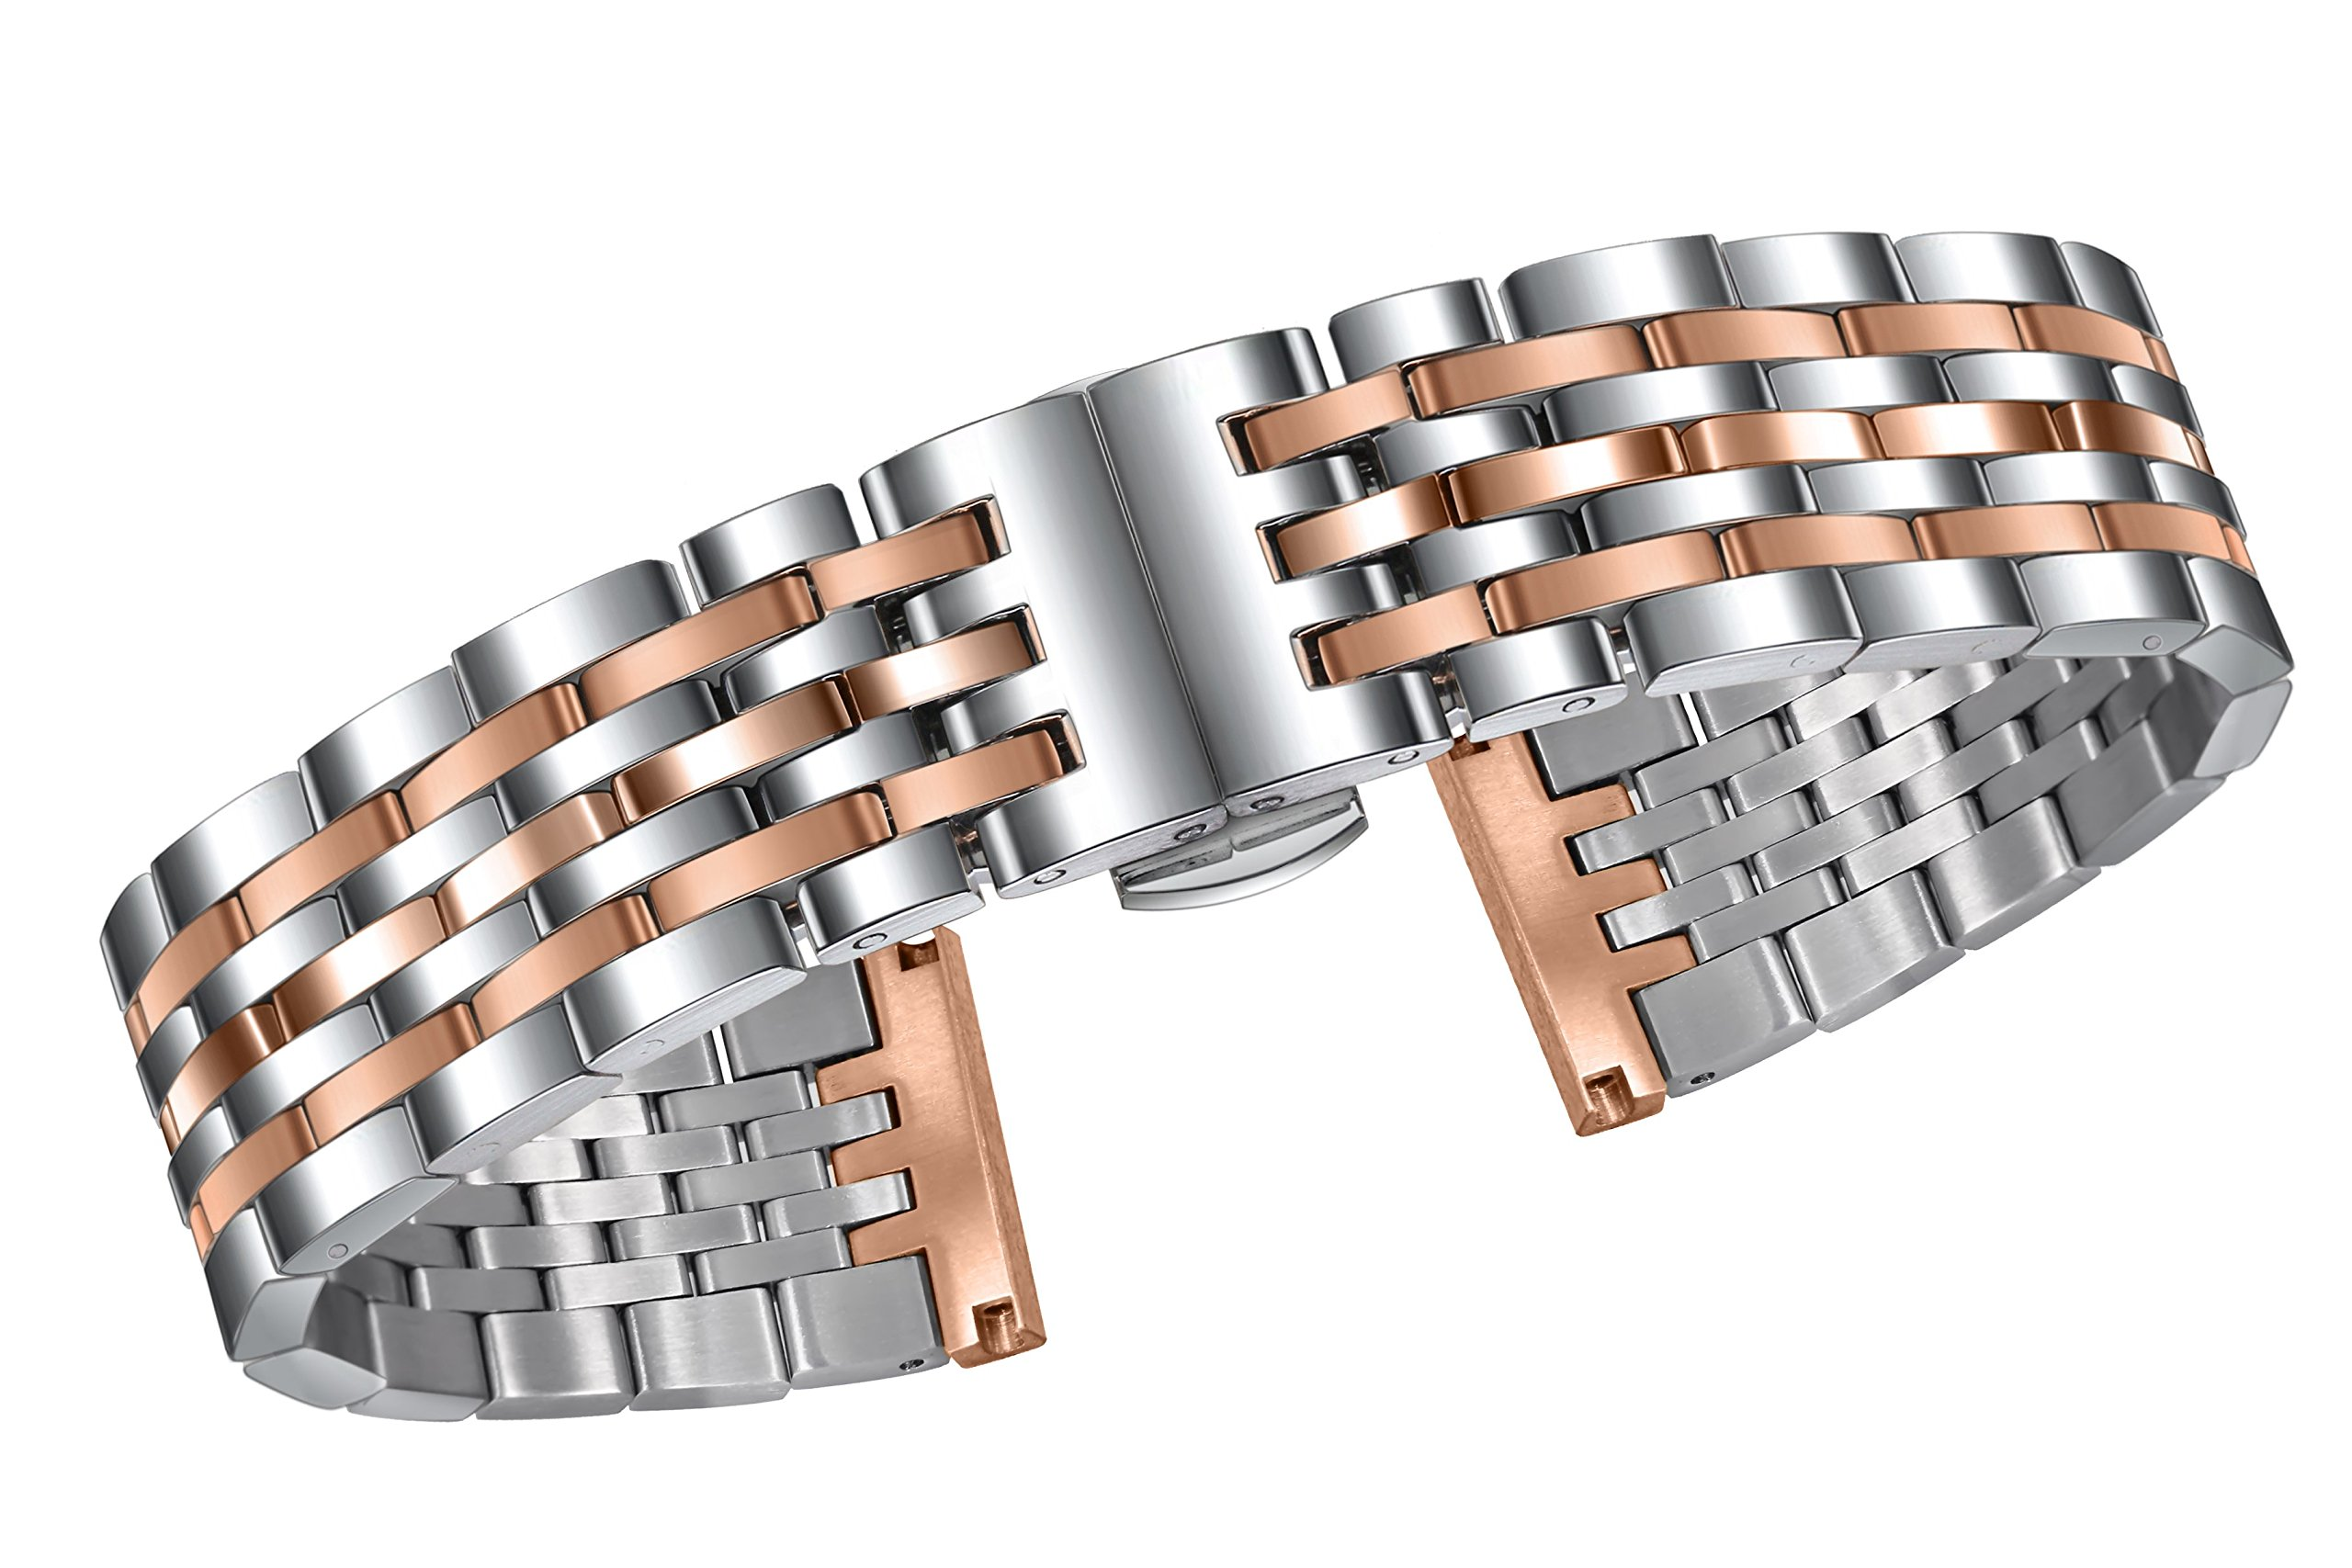 20mm Two Tone Metal Watch Bands in Silver and Rose Gold Super Stainless Steel with Solid Links Adjustable Size by autulet